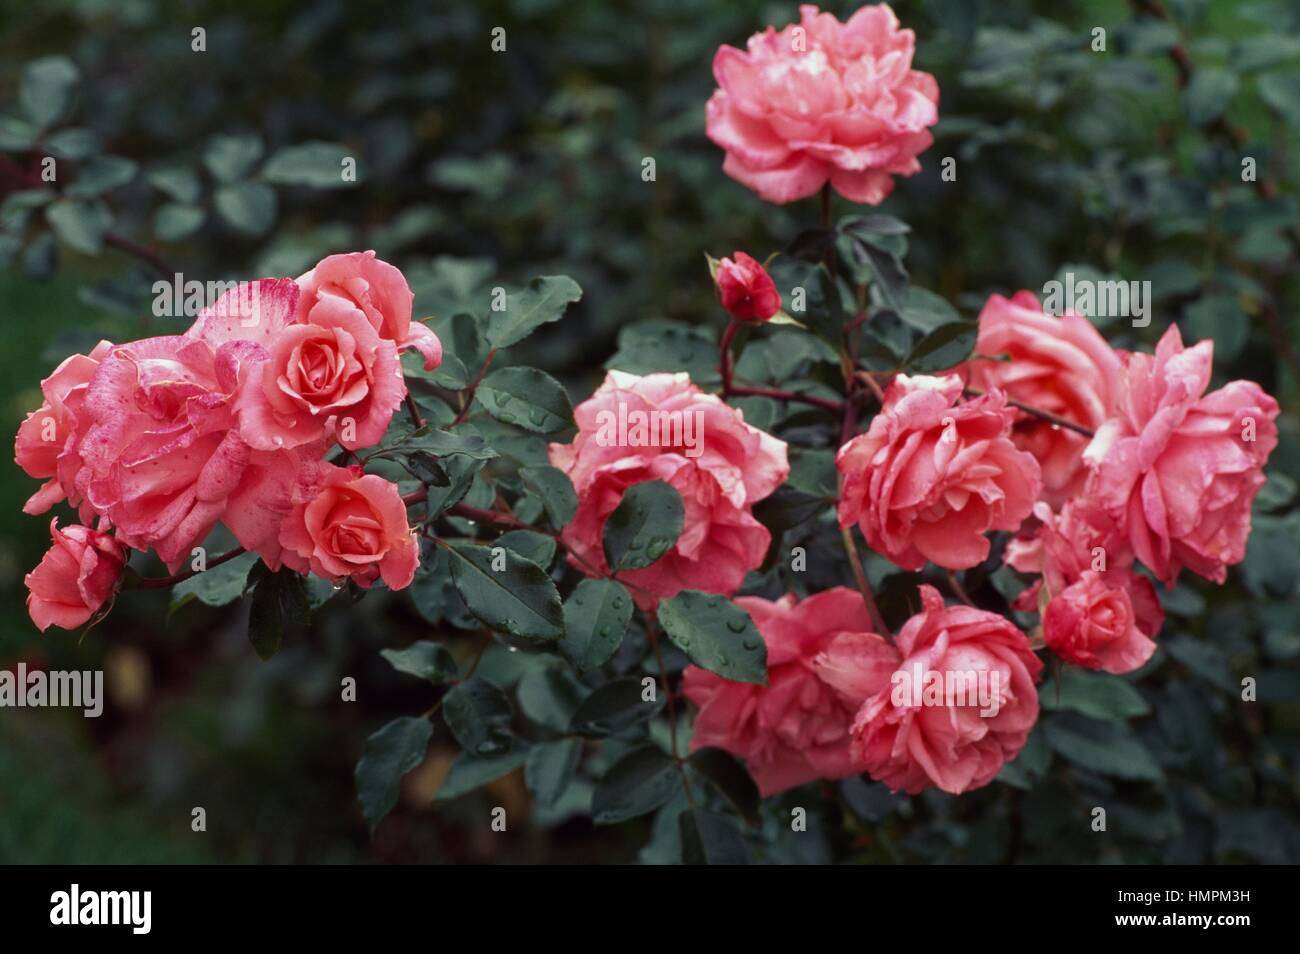 Pink Claire rose, Rosaceae. - Stock Image